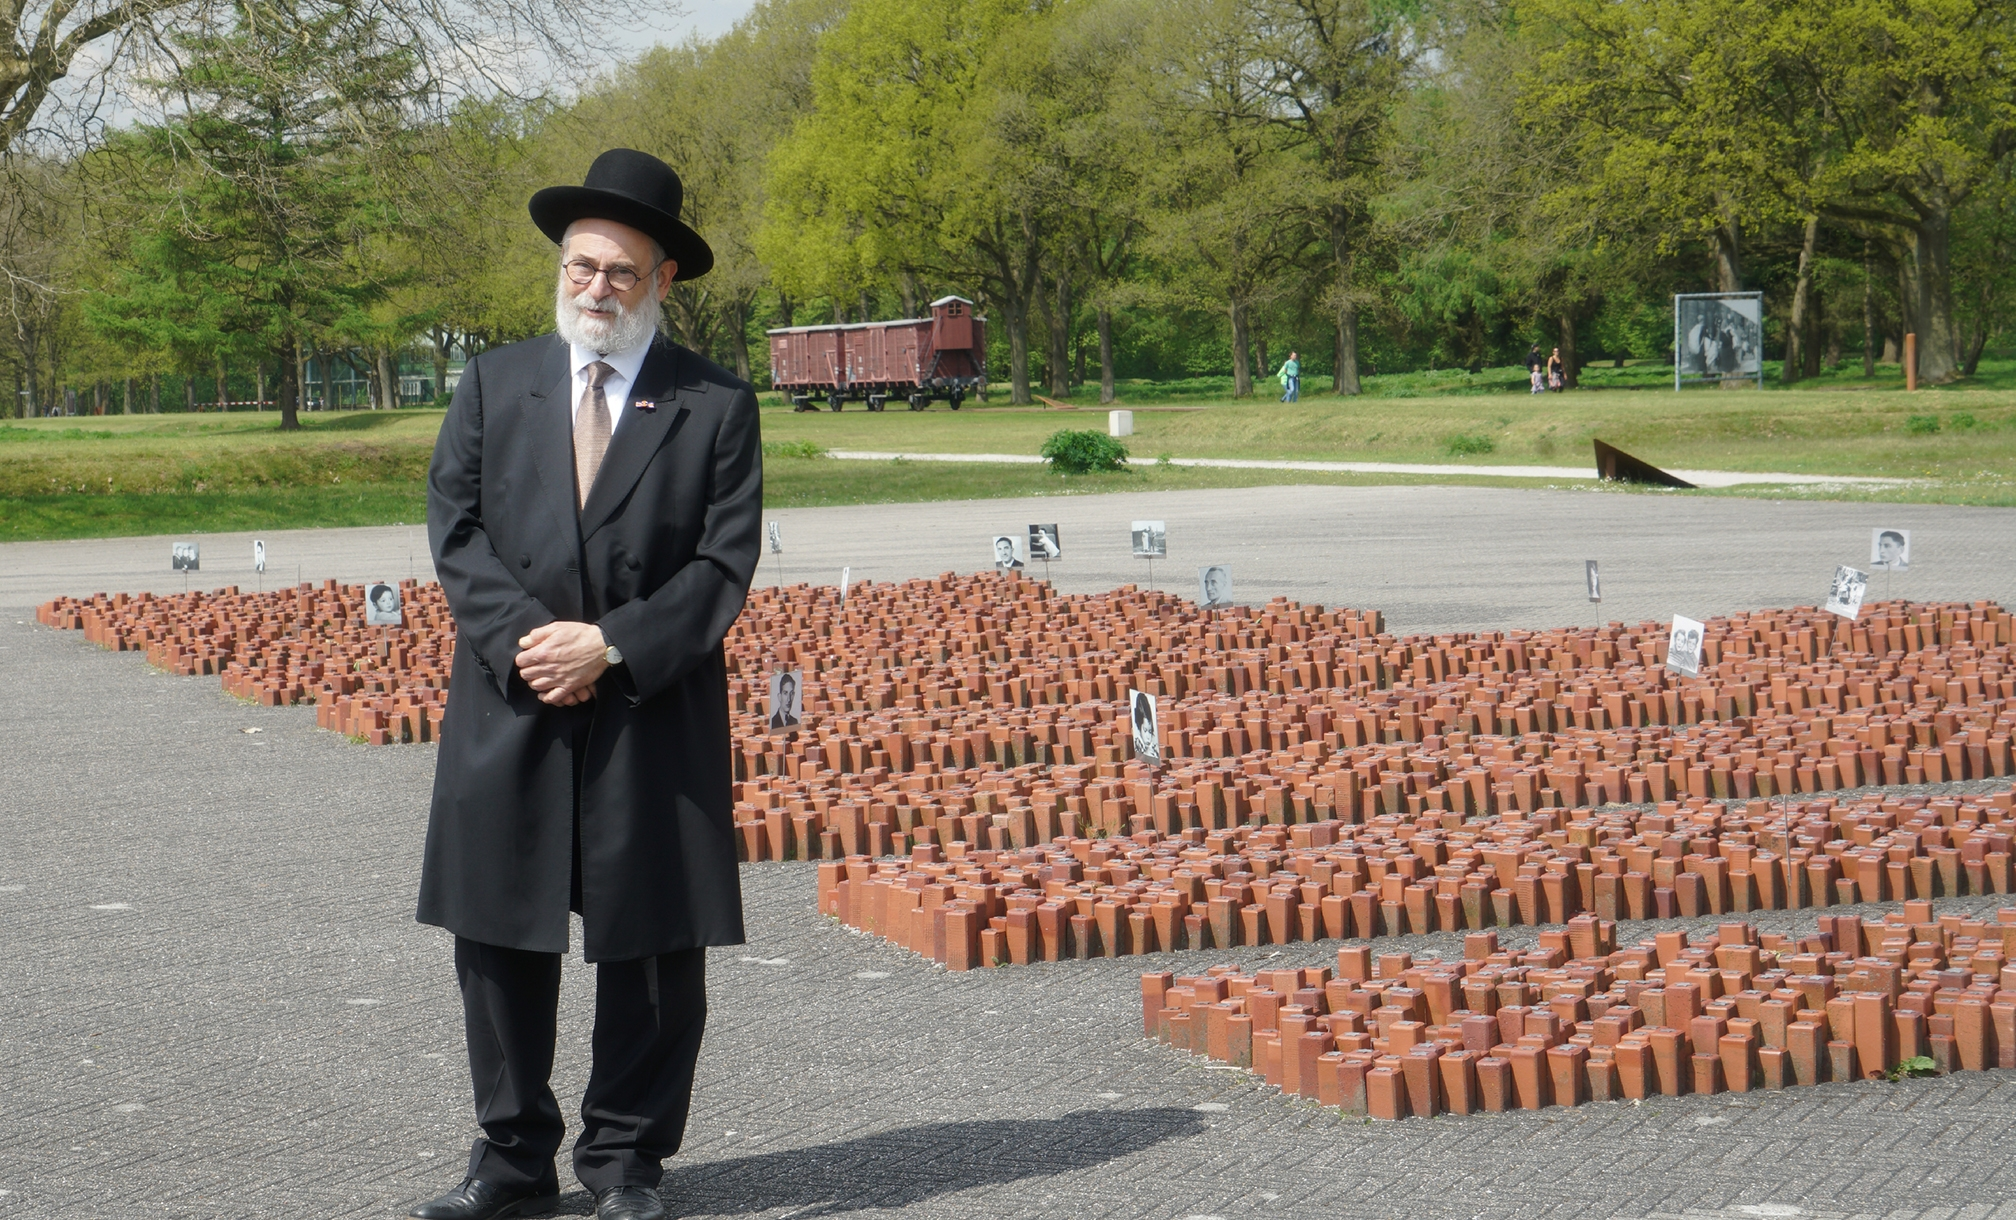 Dutch chief rabbi says 'no need' for churches' mea culpa over Holocaust inaction